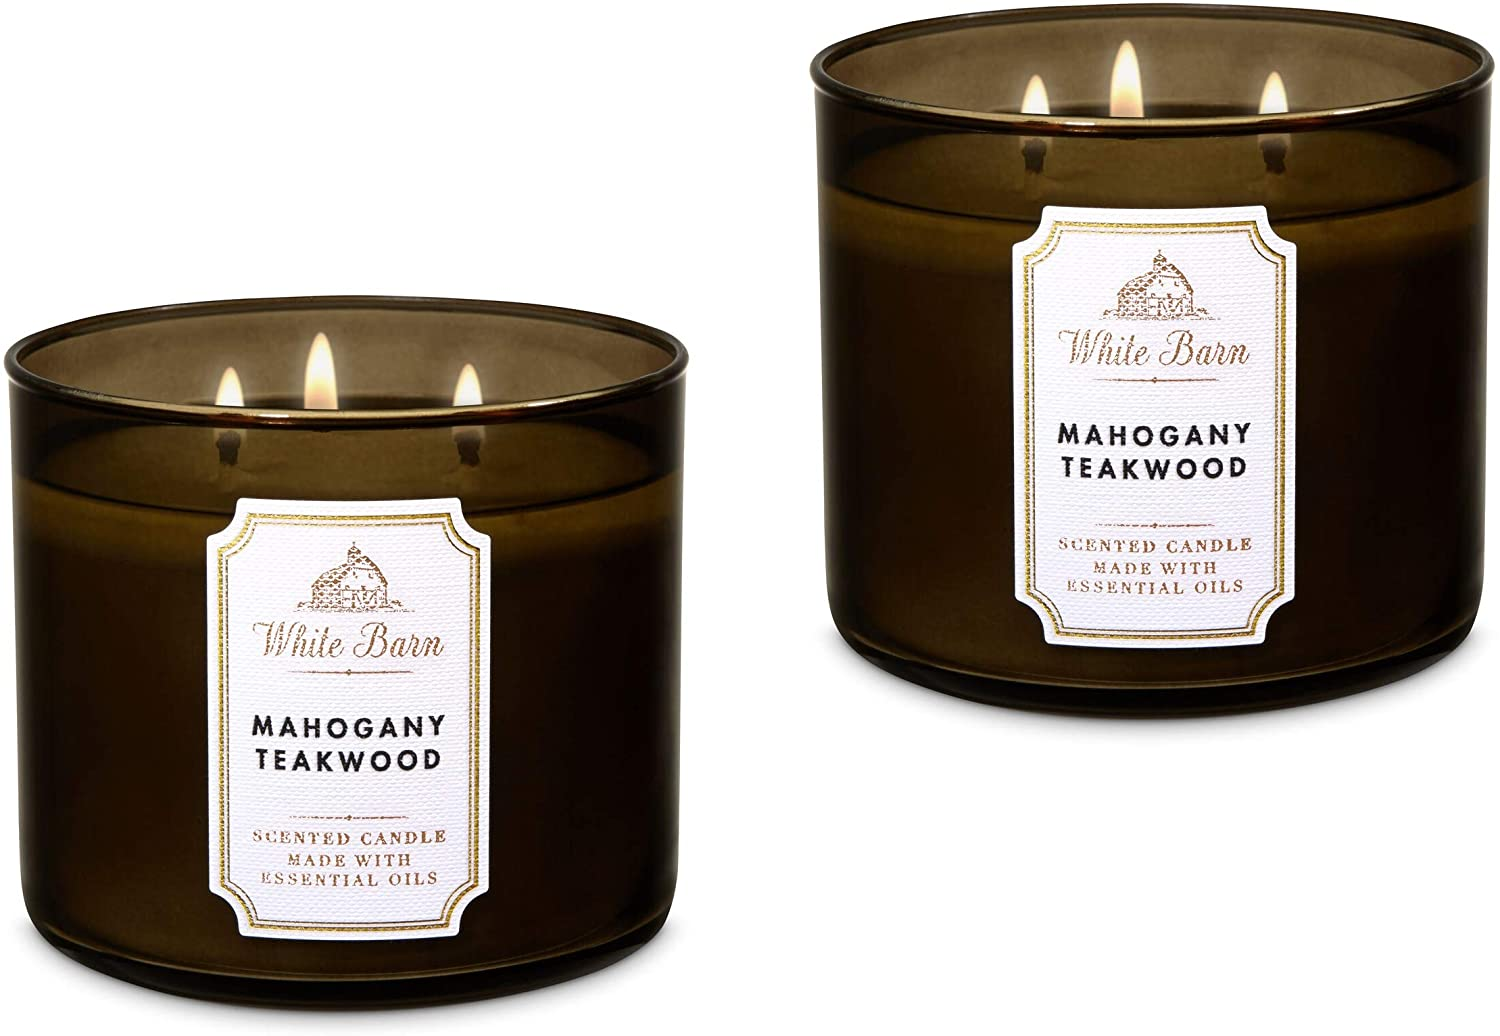 Bath Body Works White Barn Mahogany Candle Manufacturer OFFicial shop 3-Wick in Genuine Teakwood